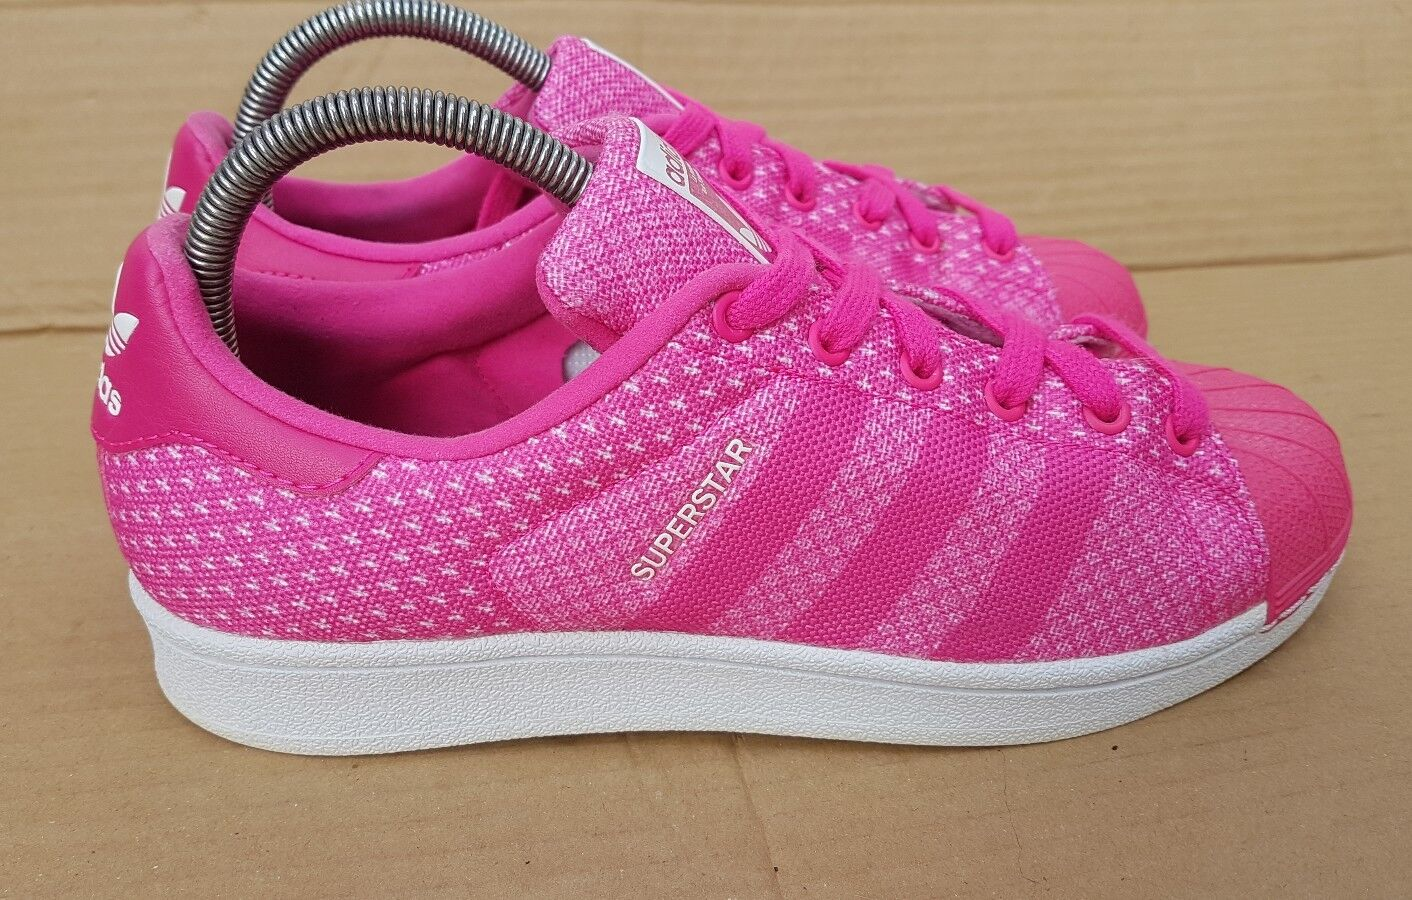 ADIDAS SUPERSTAR SHELL TOE TRAINERS rose WEAVE BOXED IN Taille 5.5WORN TWICE BOXED WEAVE bd1ae0